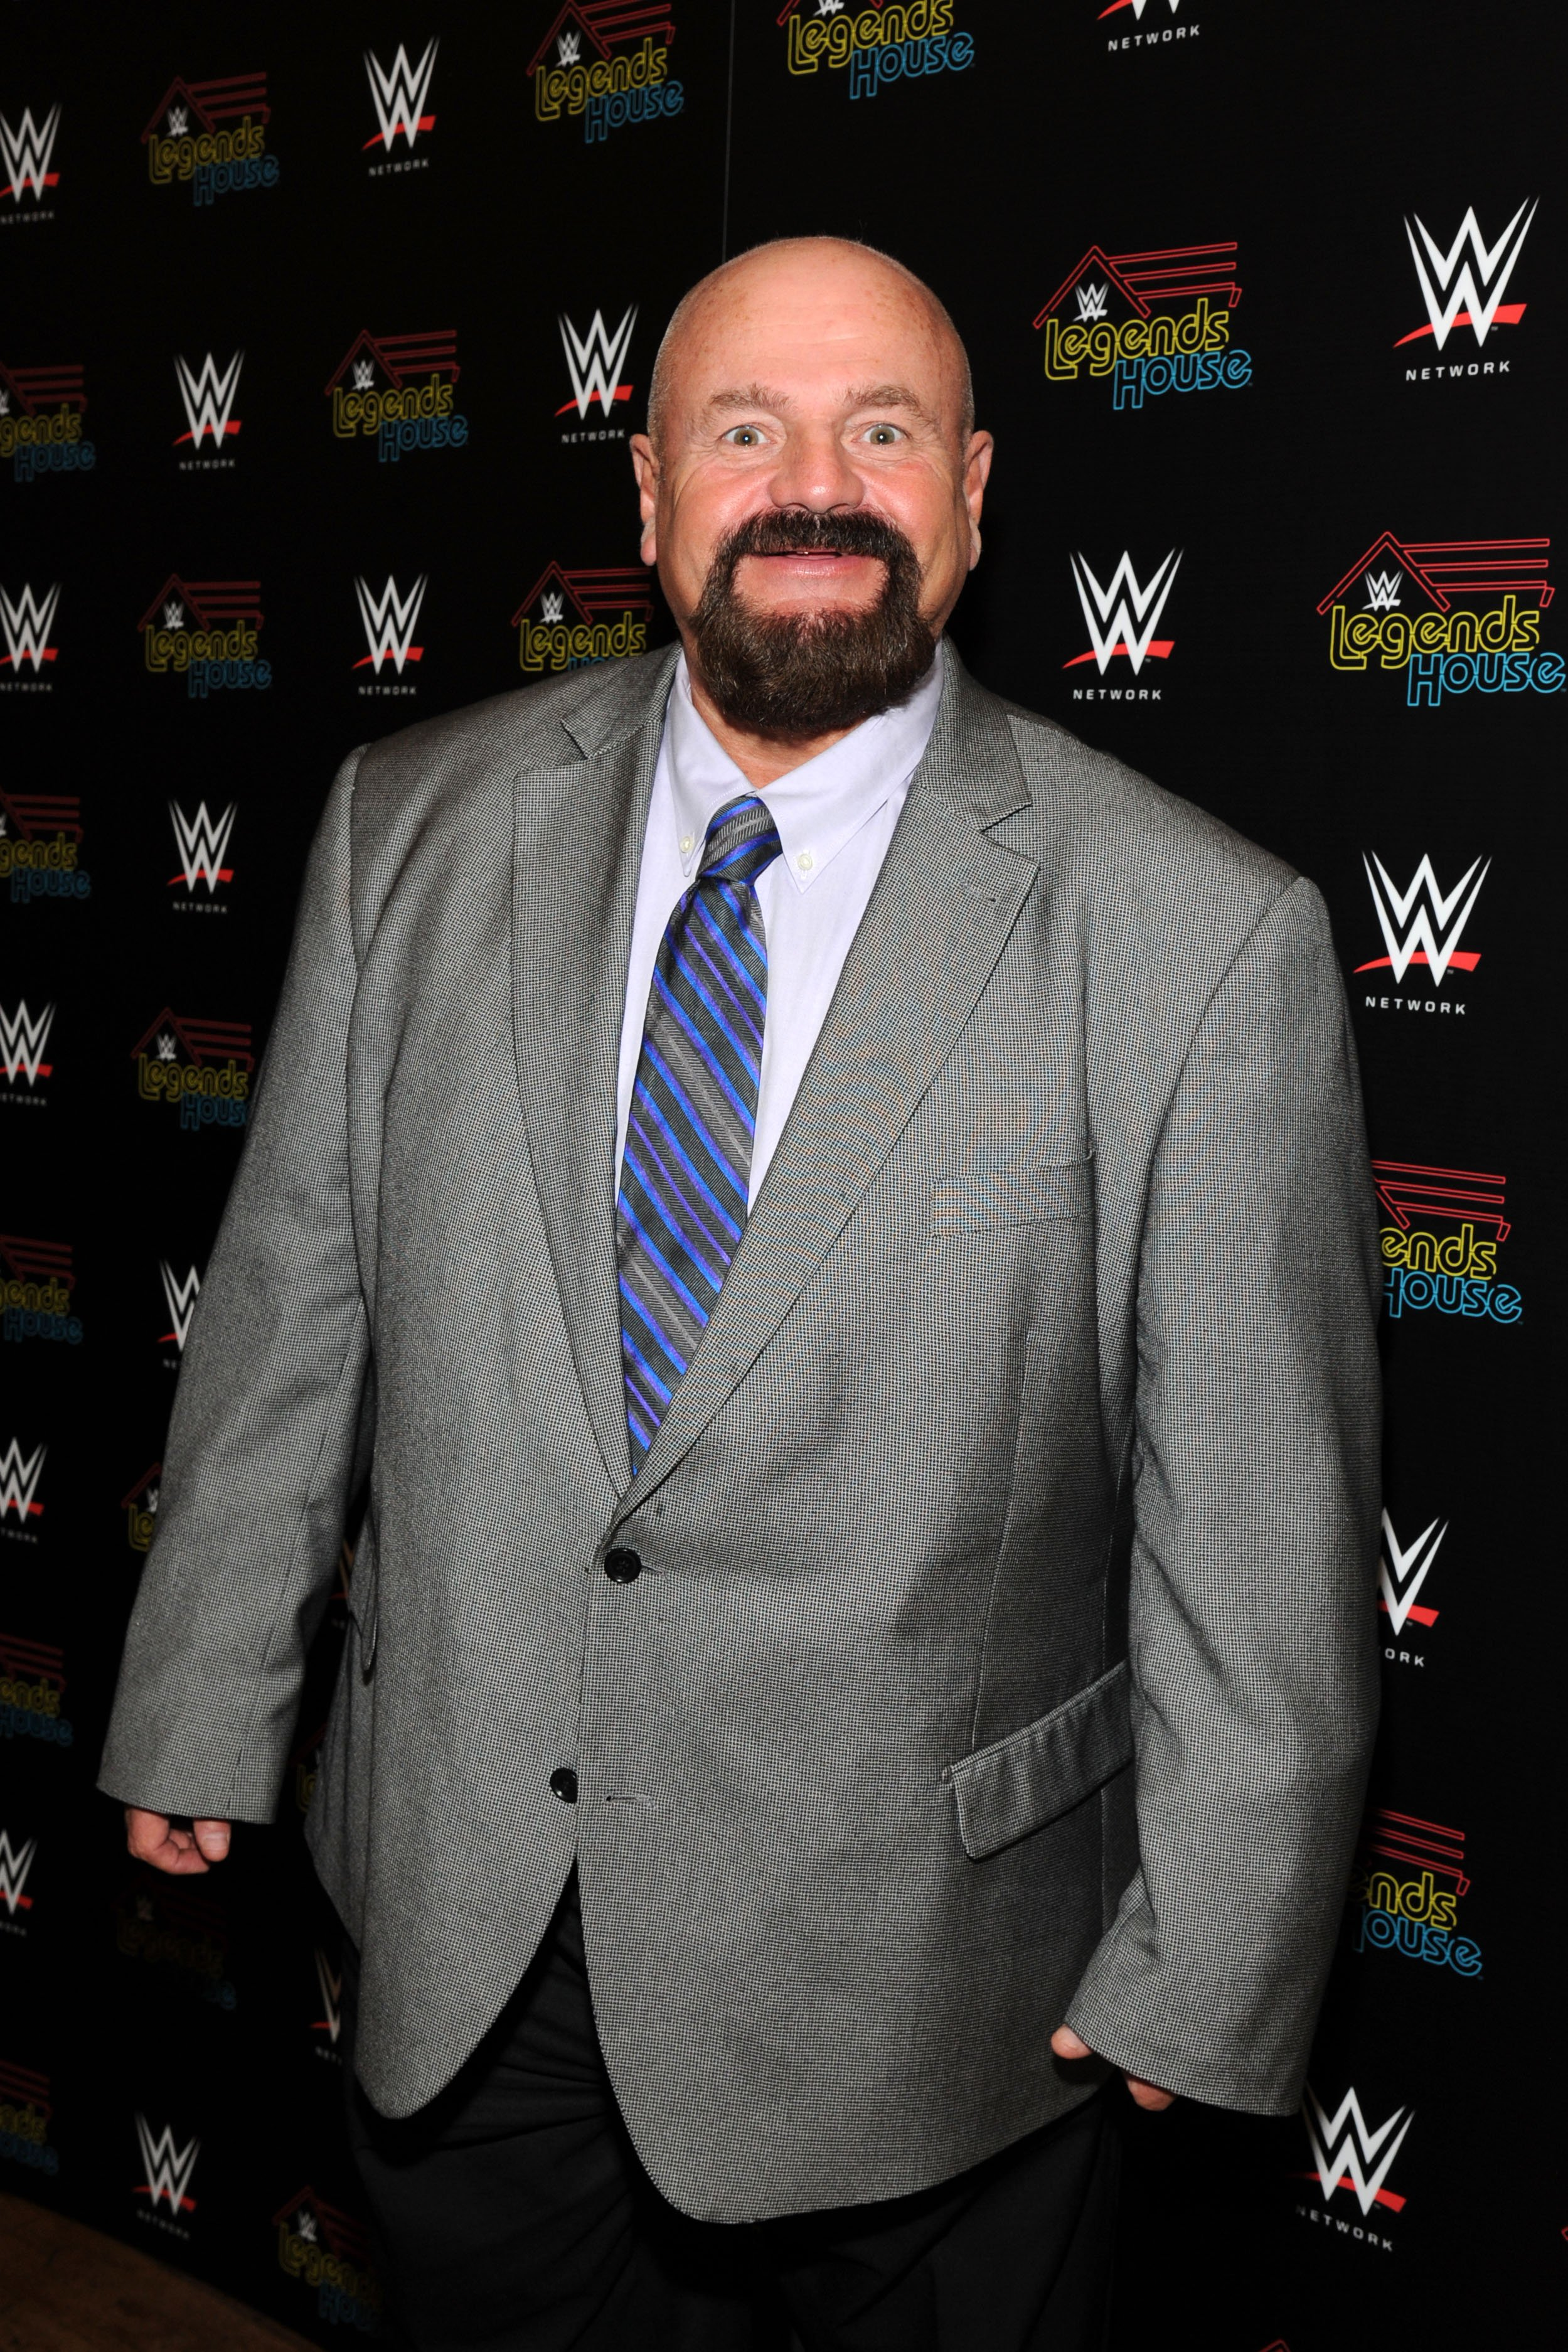 """Howard Finkel attends the WWE screening of """"Legends' House"""" on April 15, 2014, in New York City. 